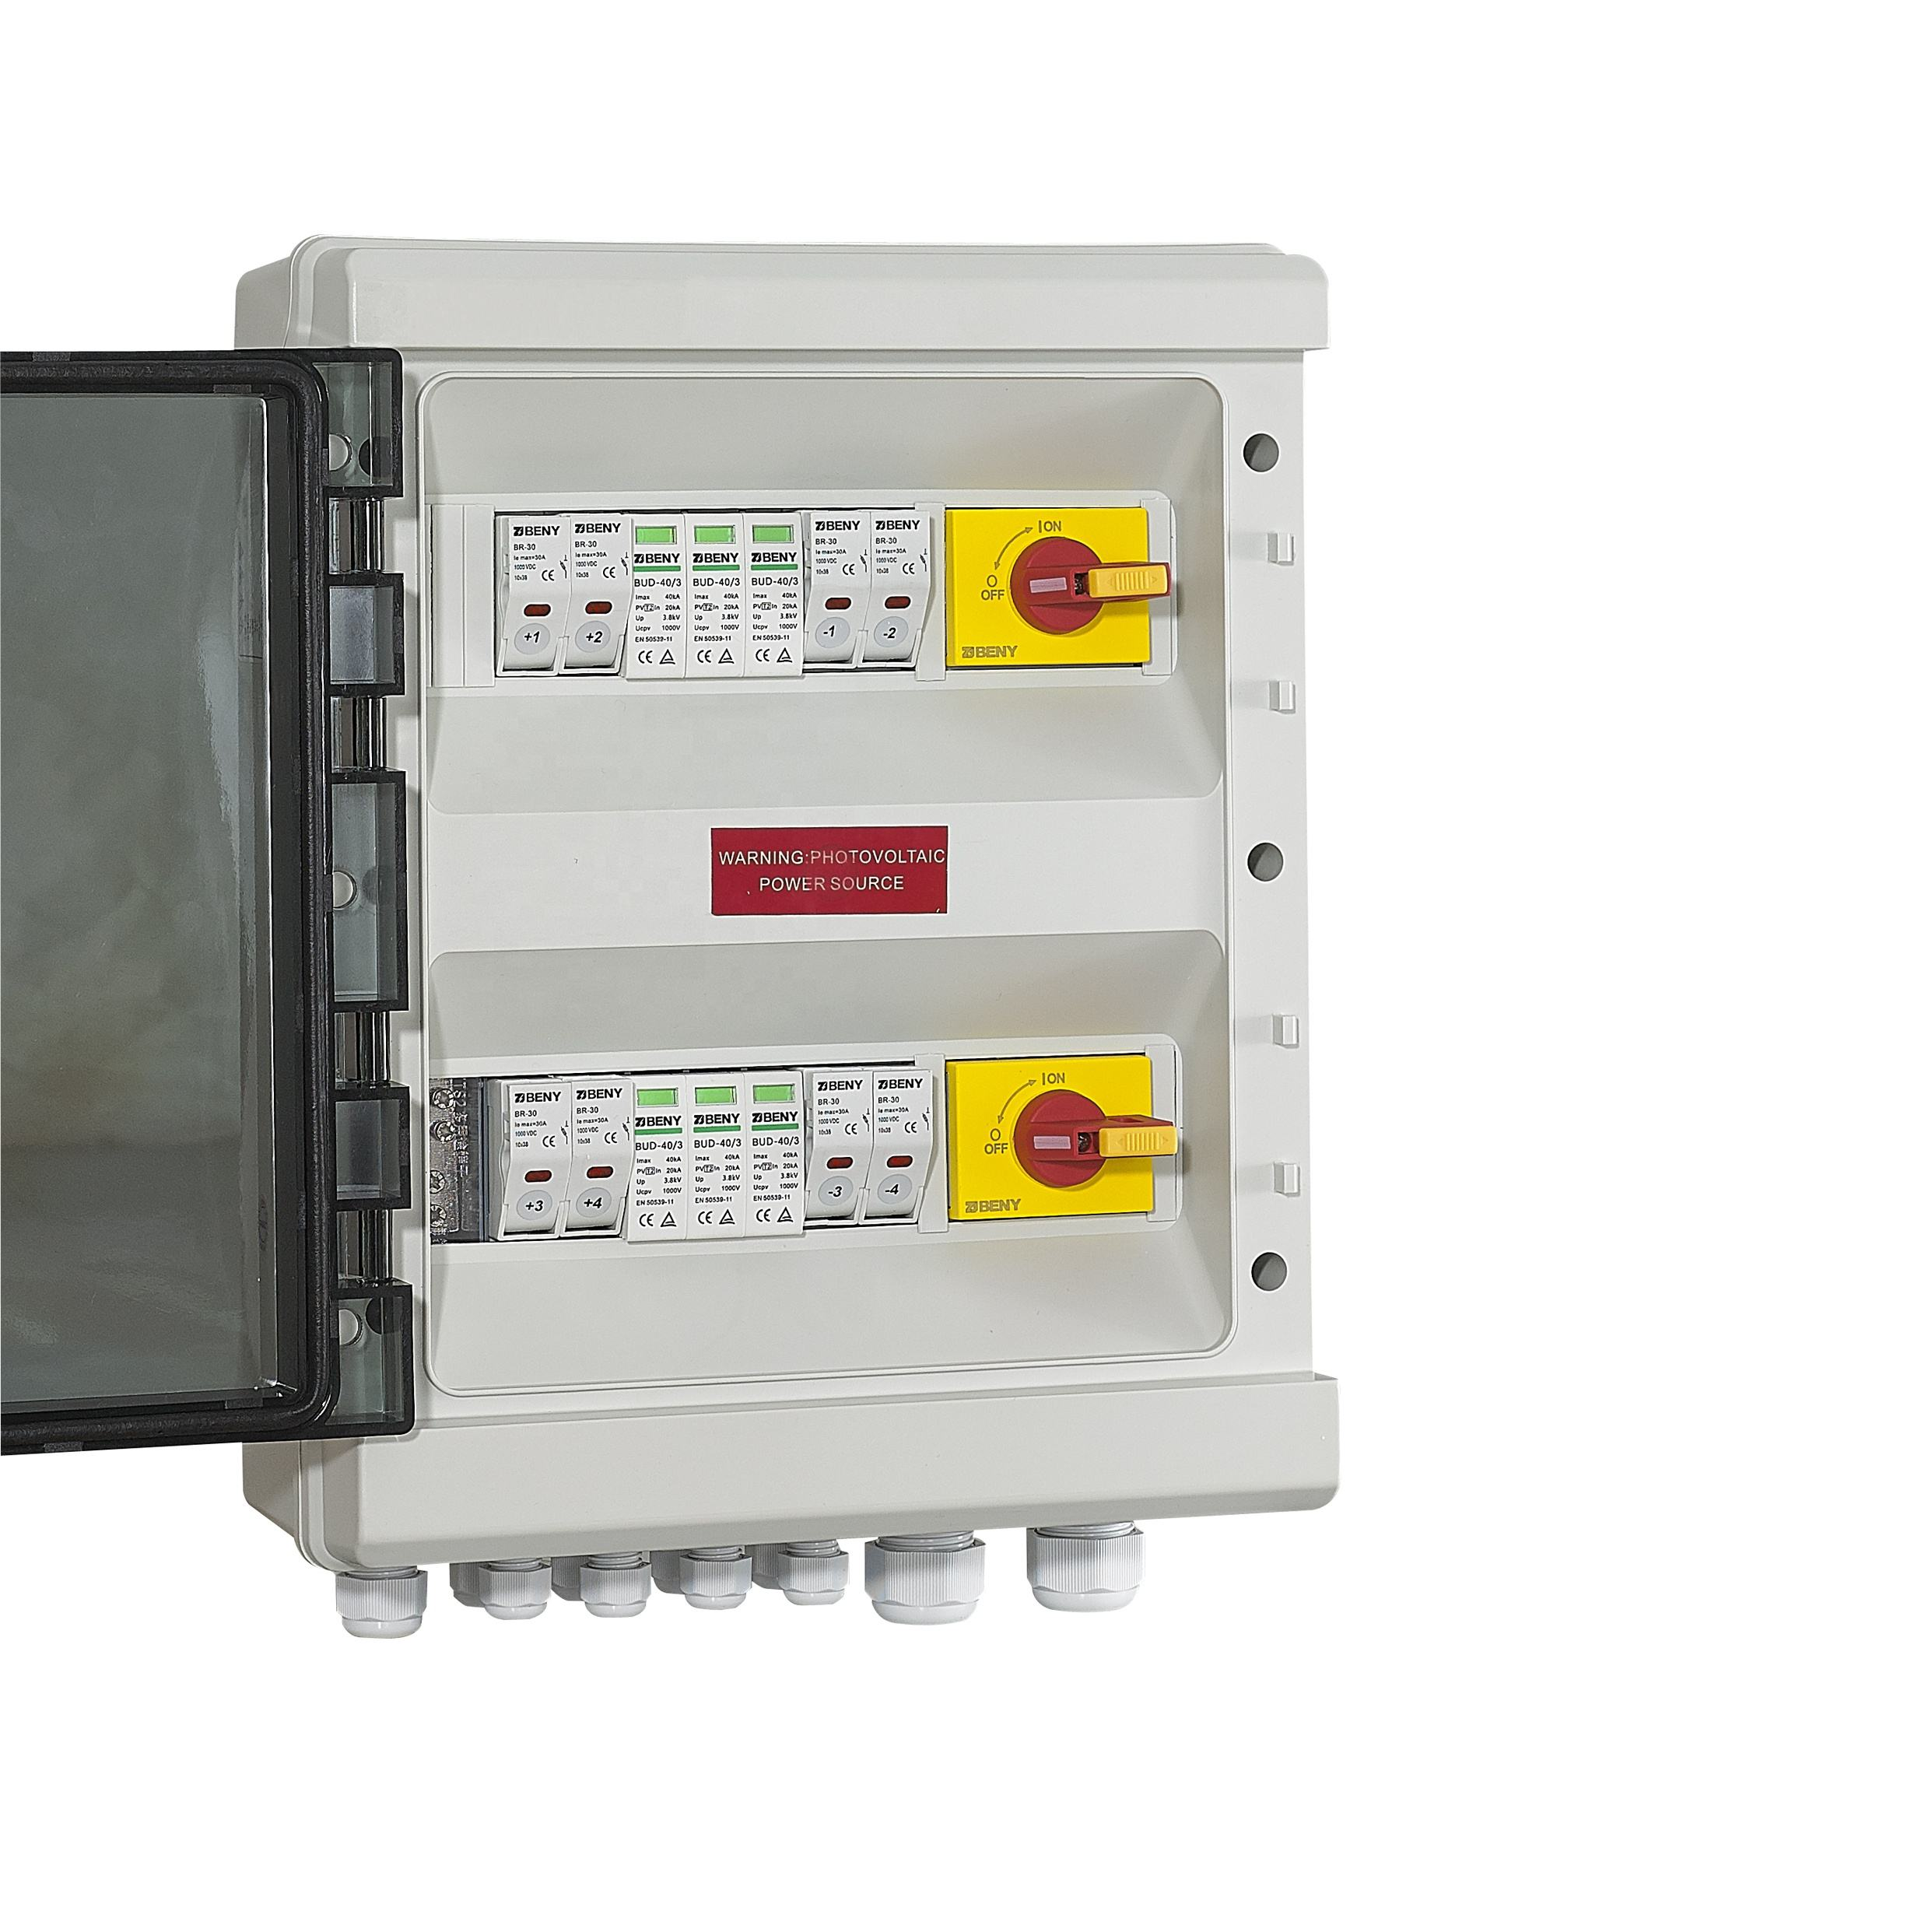 4 in 2 out DC Combiner Box for solar PV application